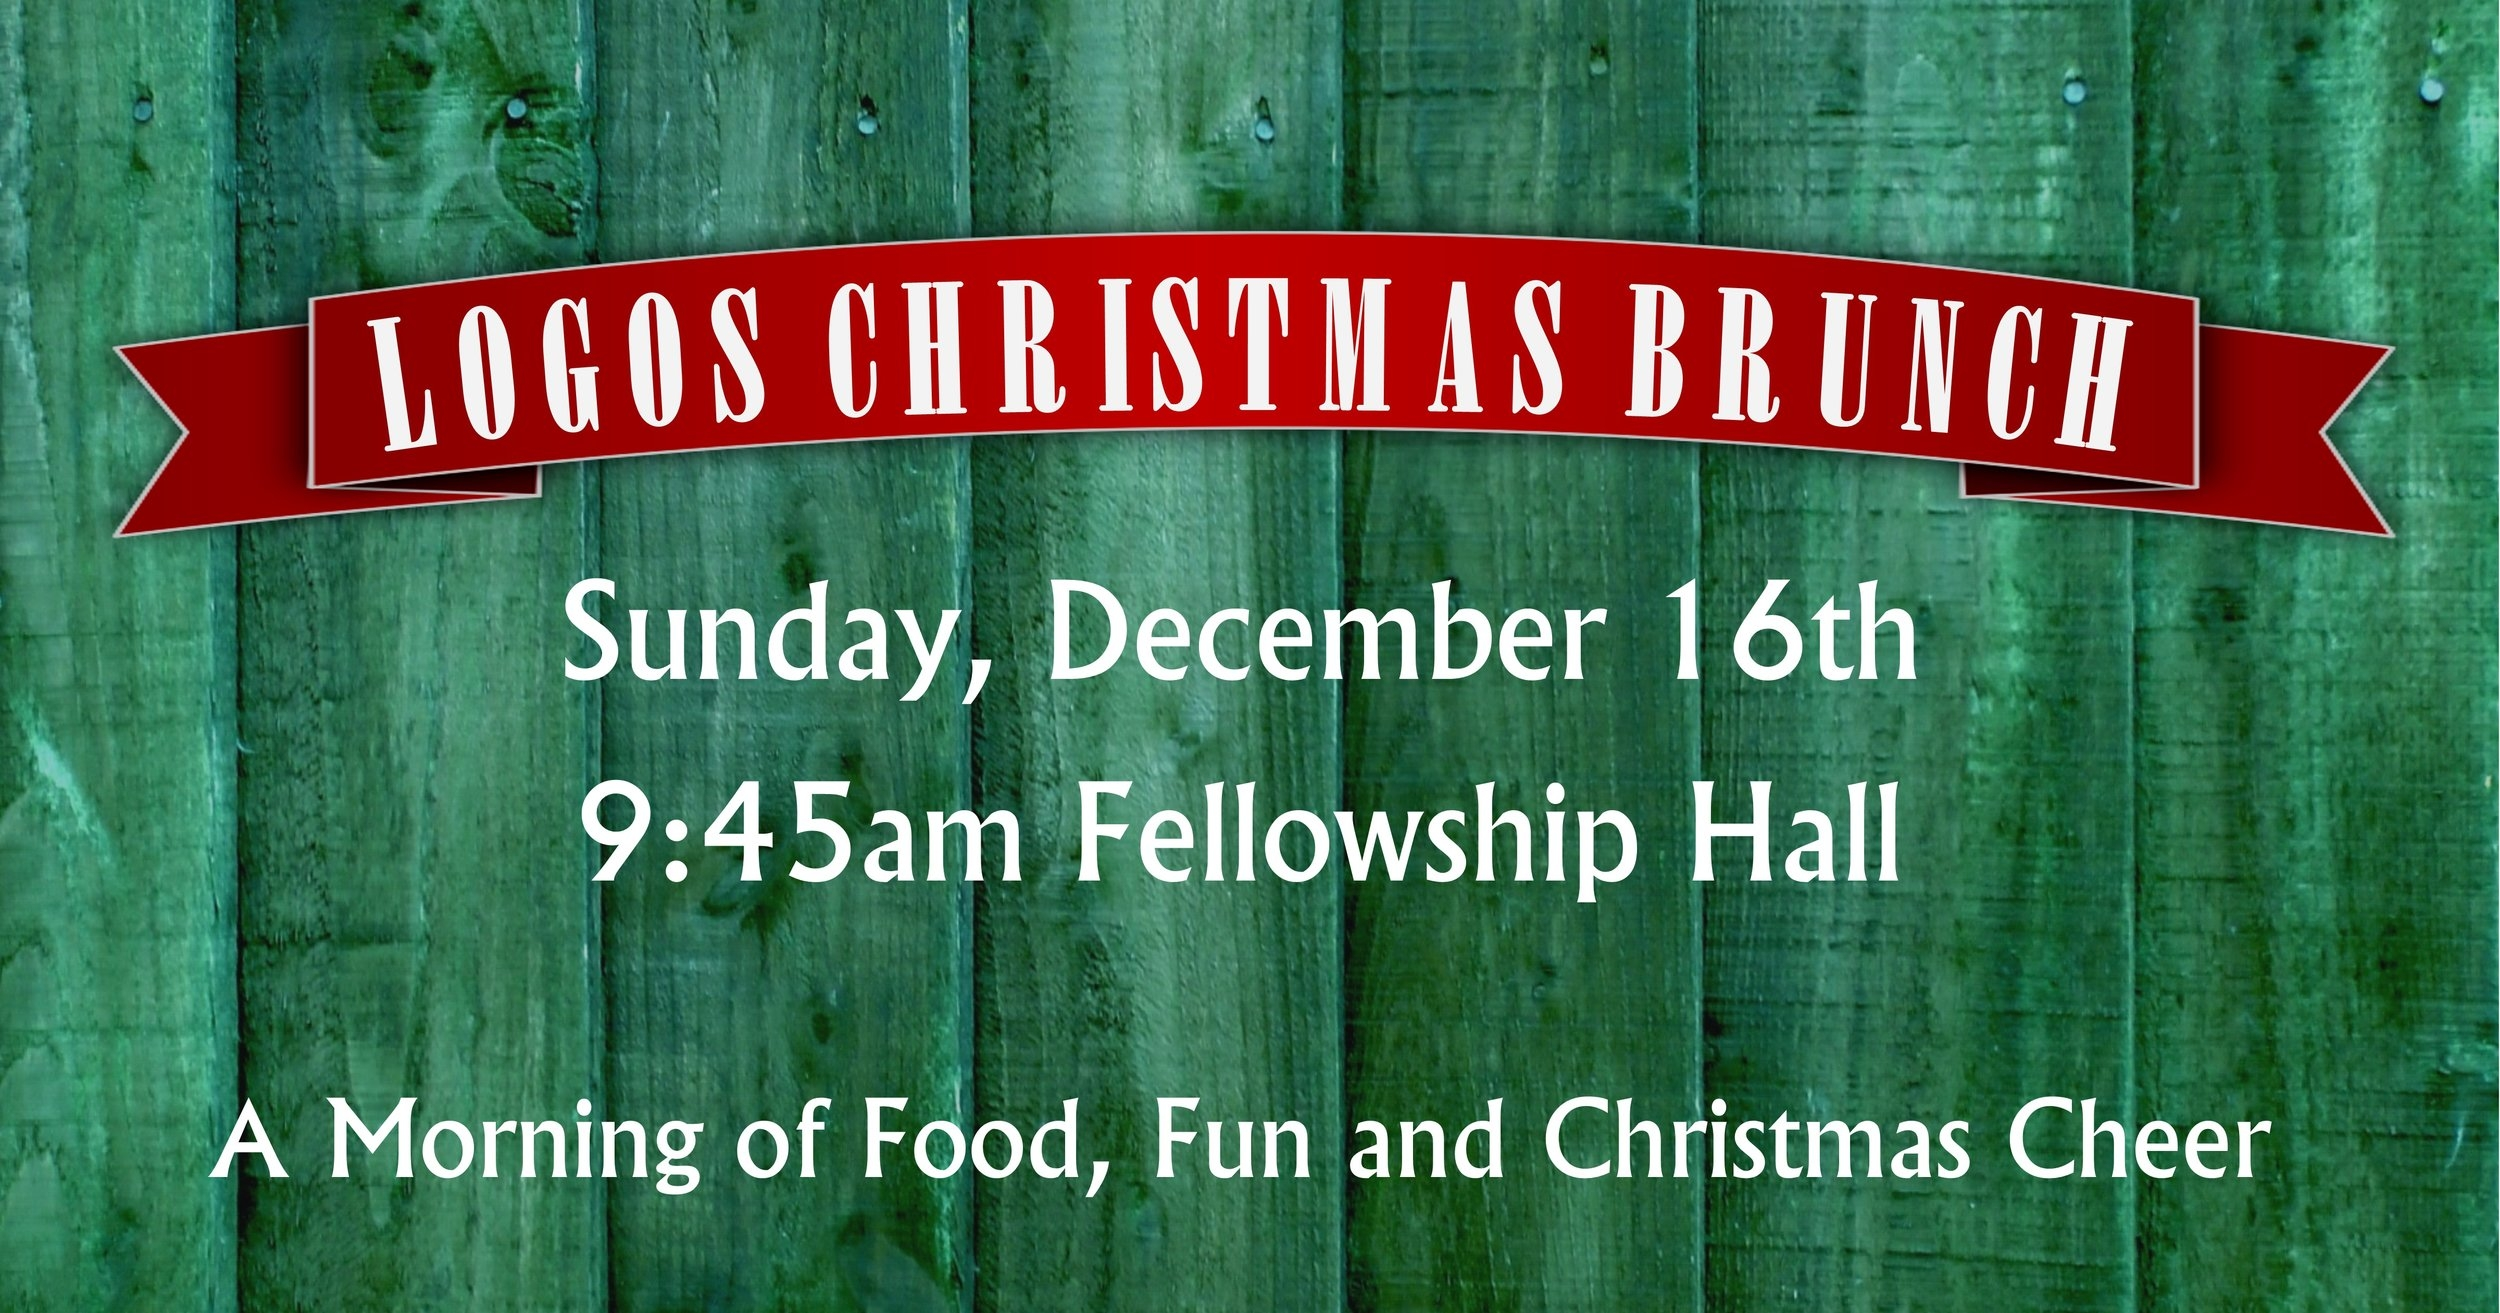 Logos Christmas Brunch facebook link 111618.jpg